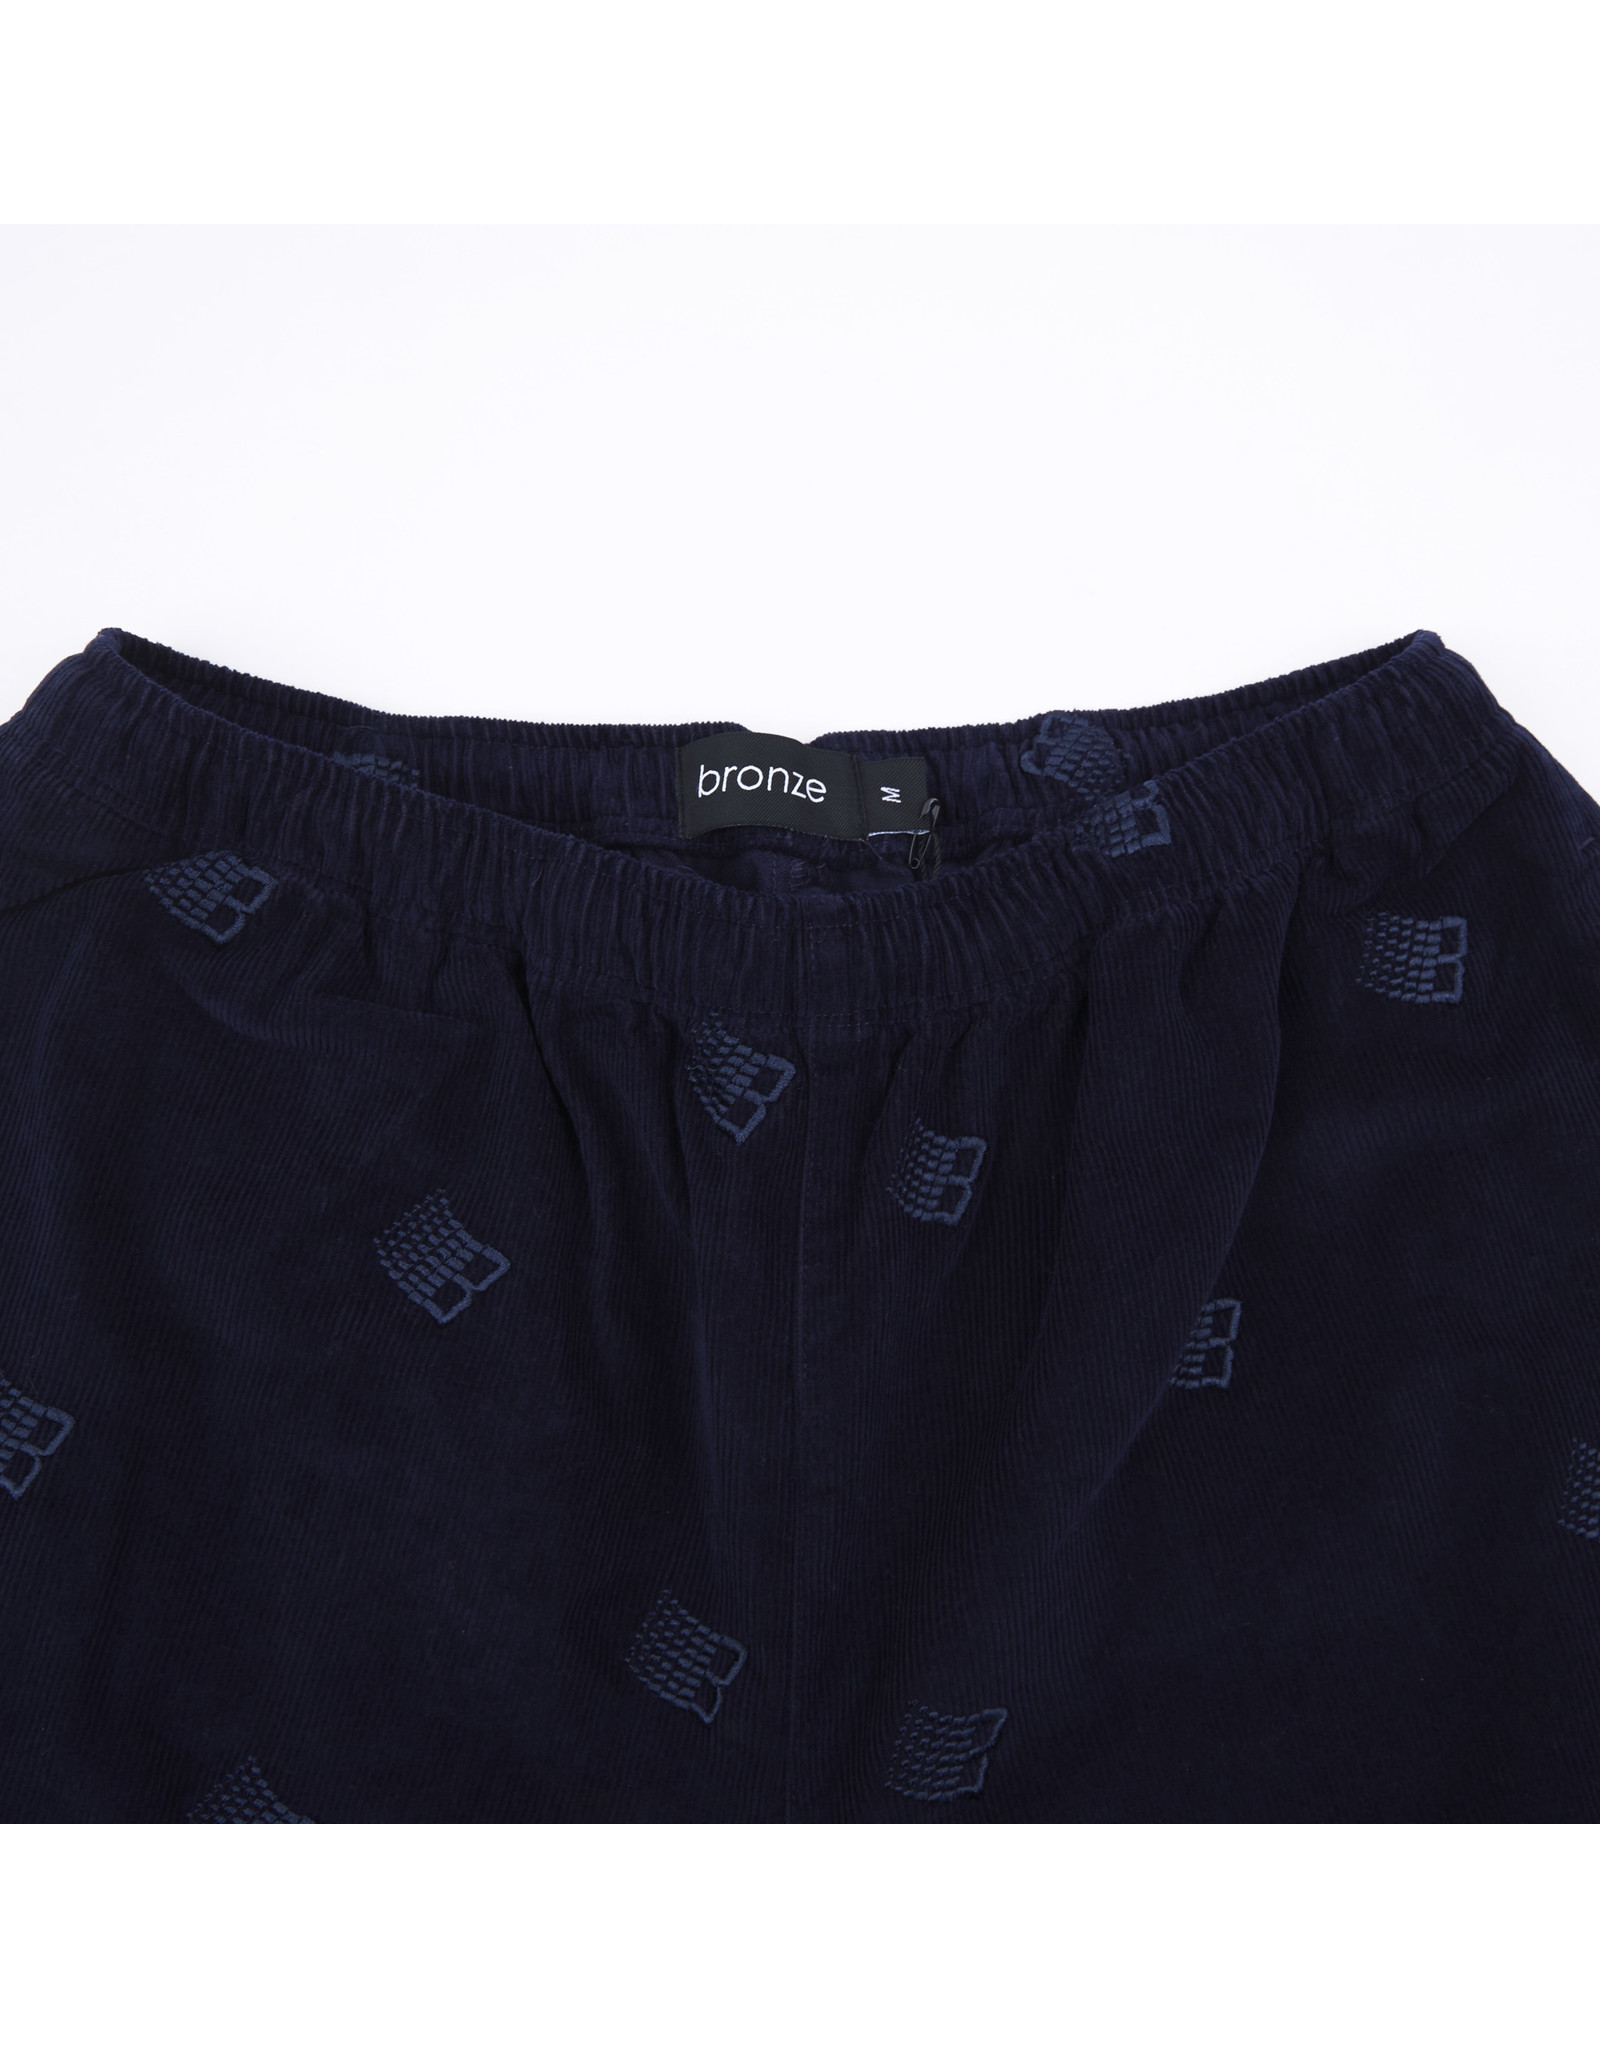 Bronze56K Allover Embroidered Pant - Navy